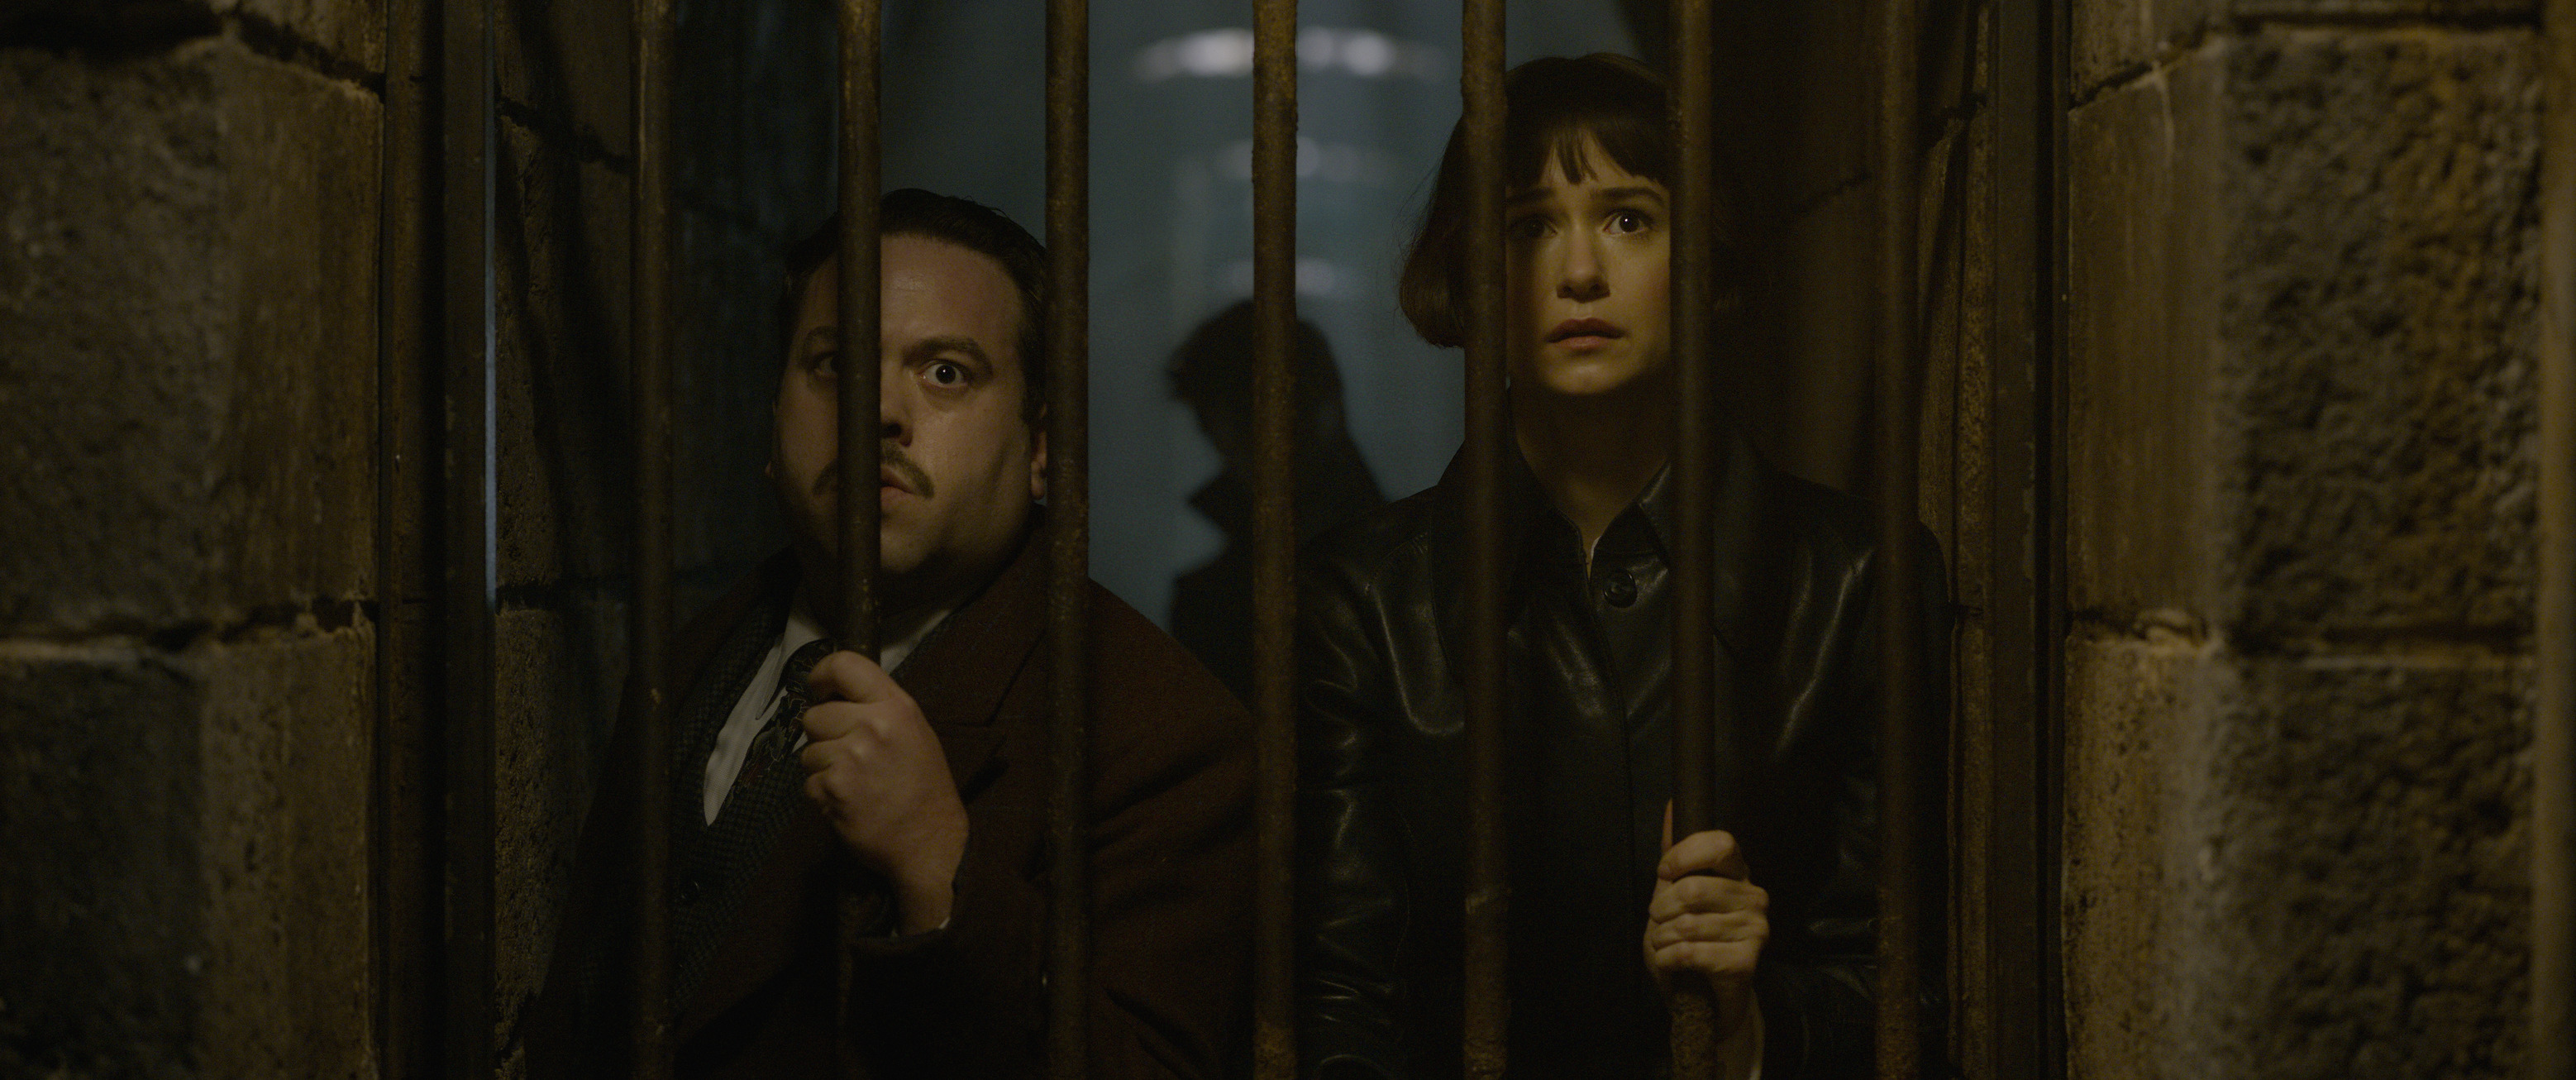 """Fantastic Beasts: The Crimes of Grindelwald"": Jacob Kowalski (Dan Fogler) and Tina Goldstein (Katherine Waterston)"